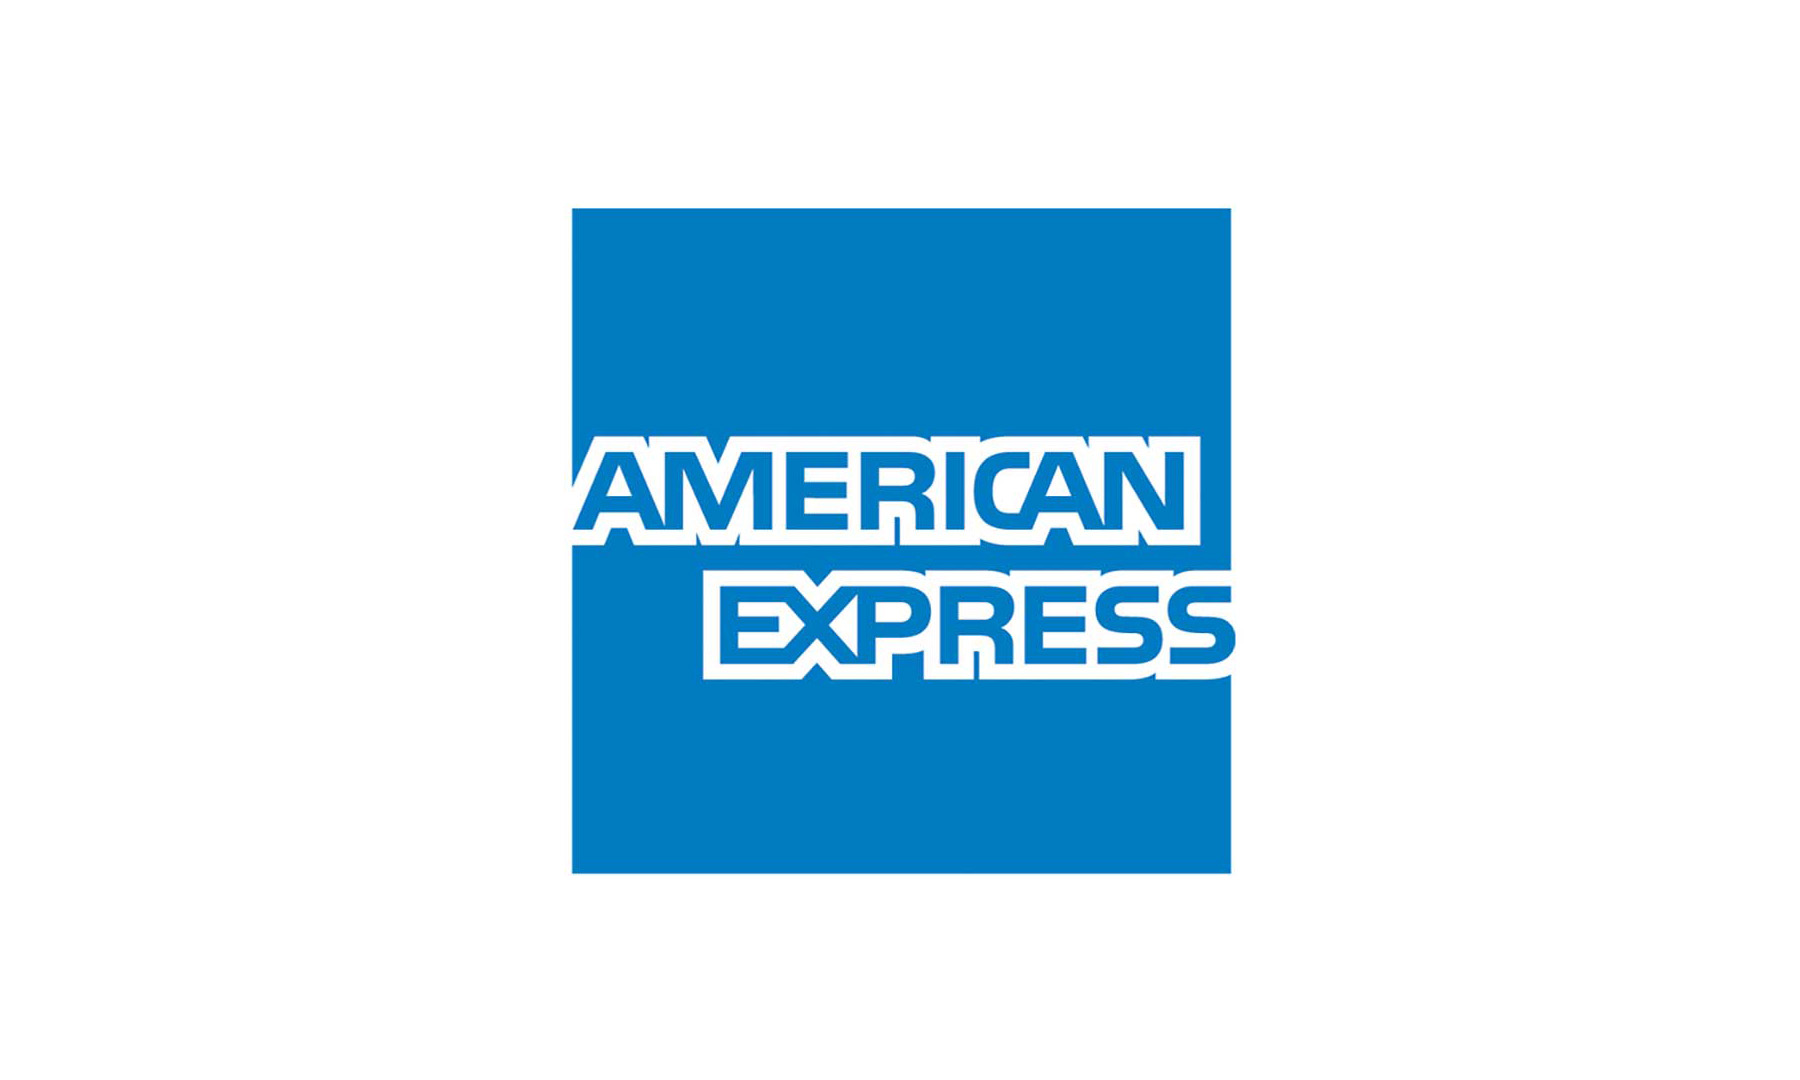 American express Wave Analysis 23 February, 2021